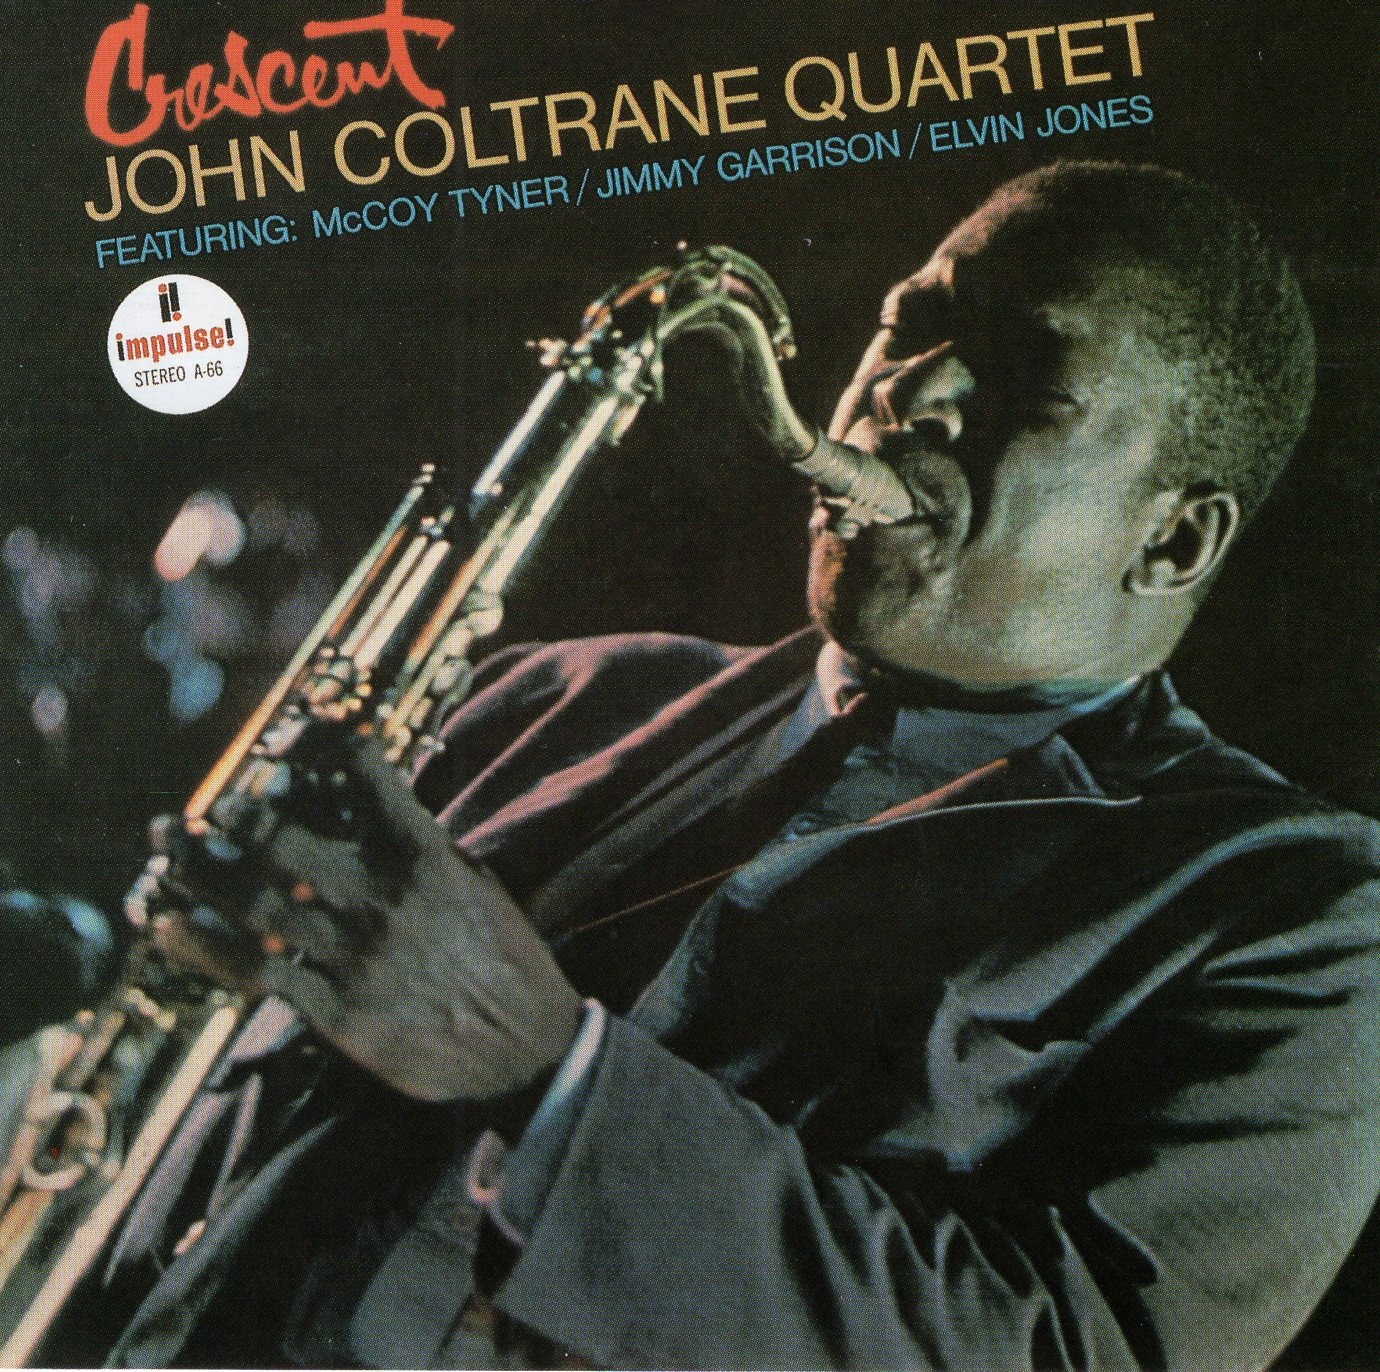 """Crescent"" John Coltrane Quartet"